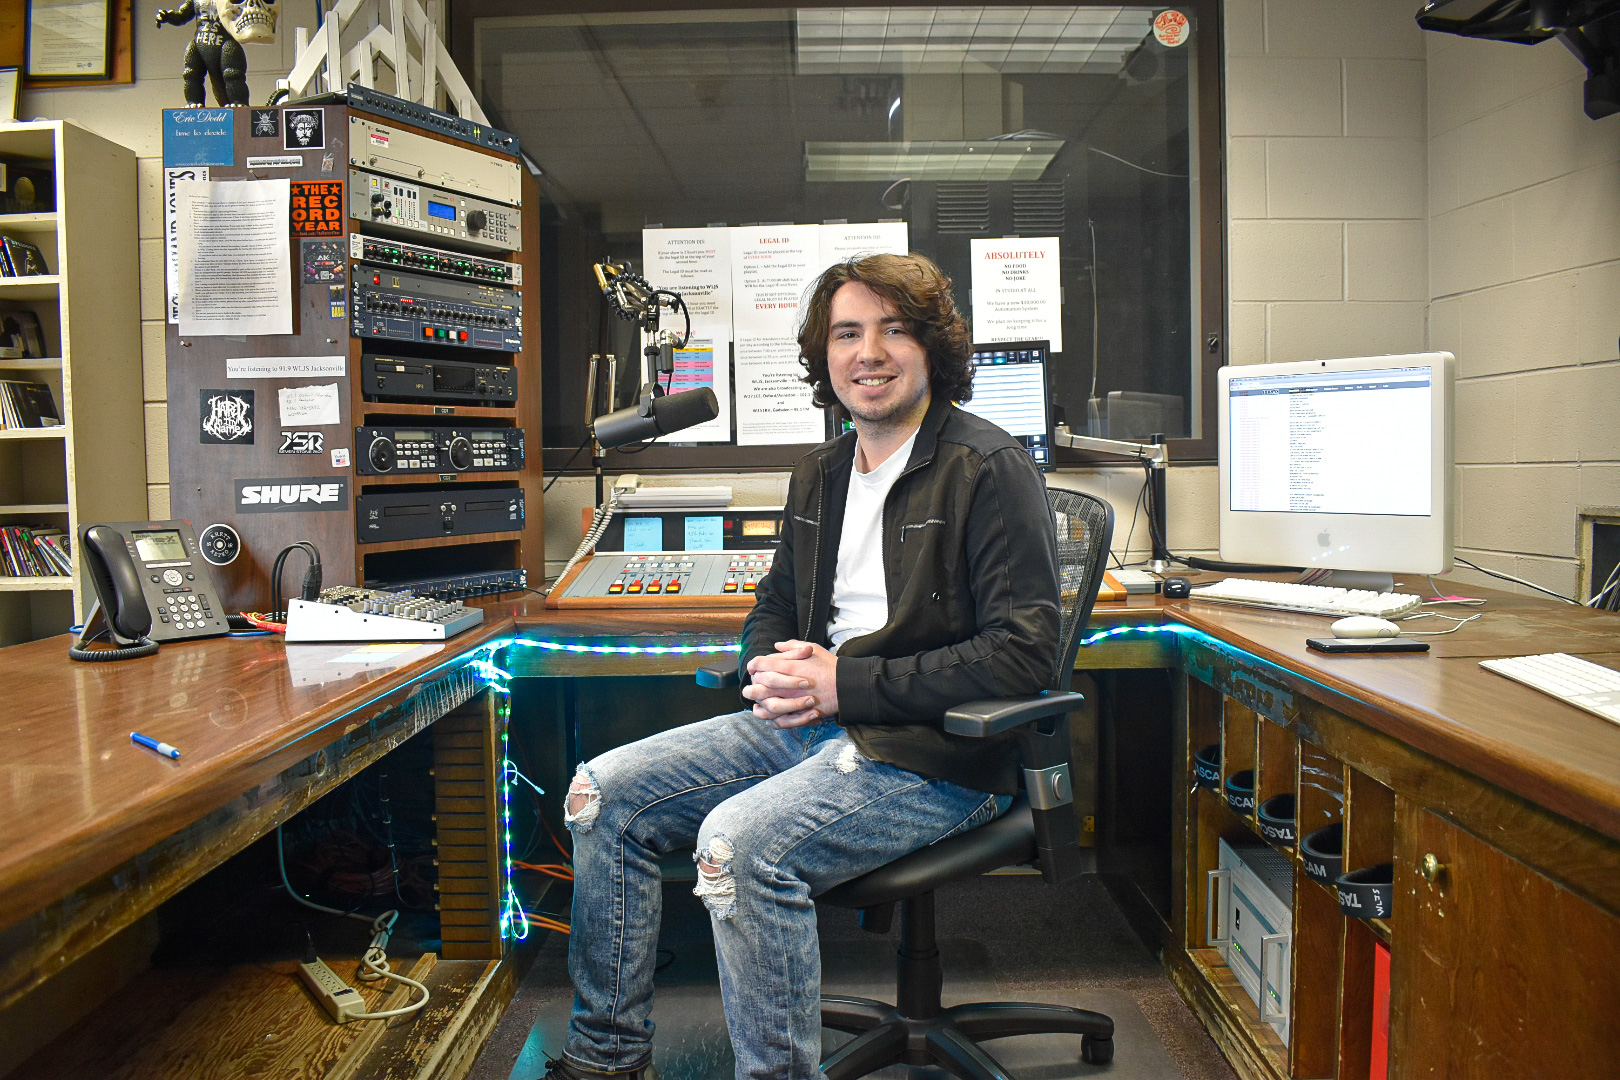 Grant Davis, pictured, has been the program director of the official radio station of Jacksonville State University (WLJS, 91.9 FM) since May 2019. (Courtesy of WLJS)